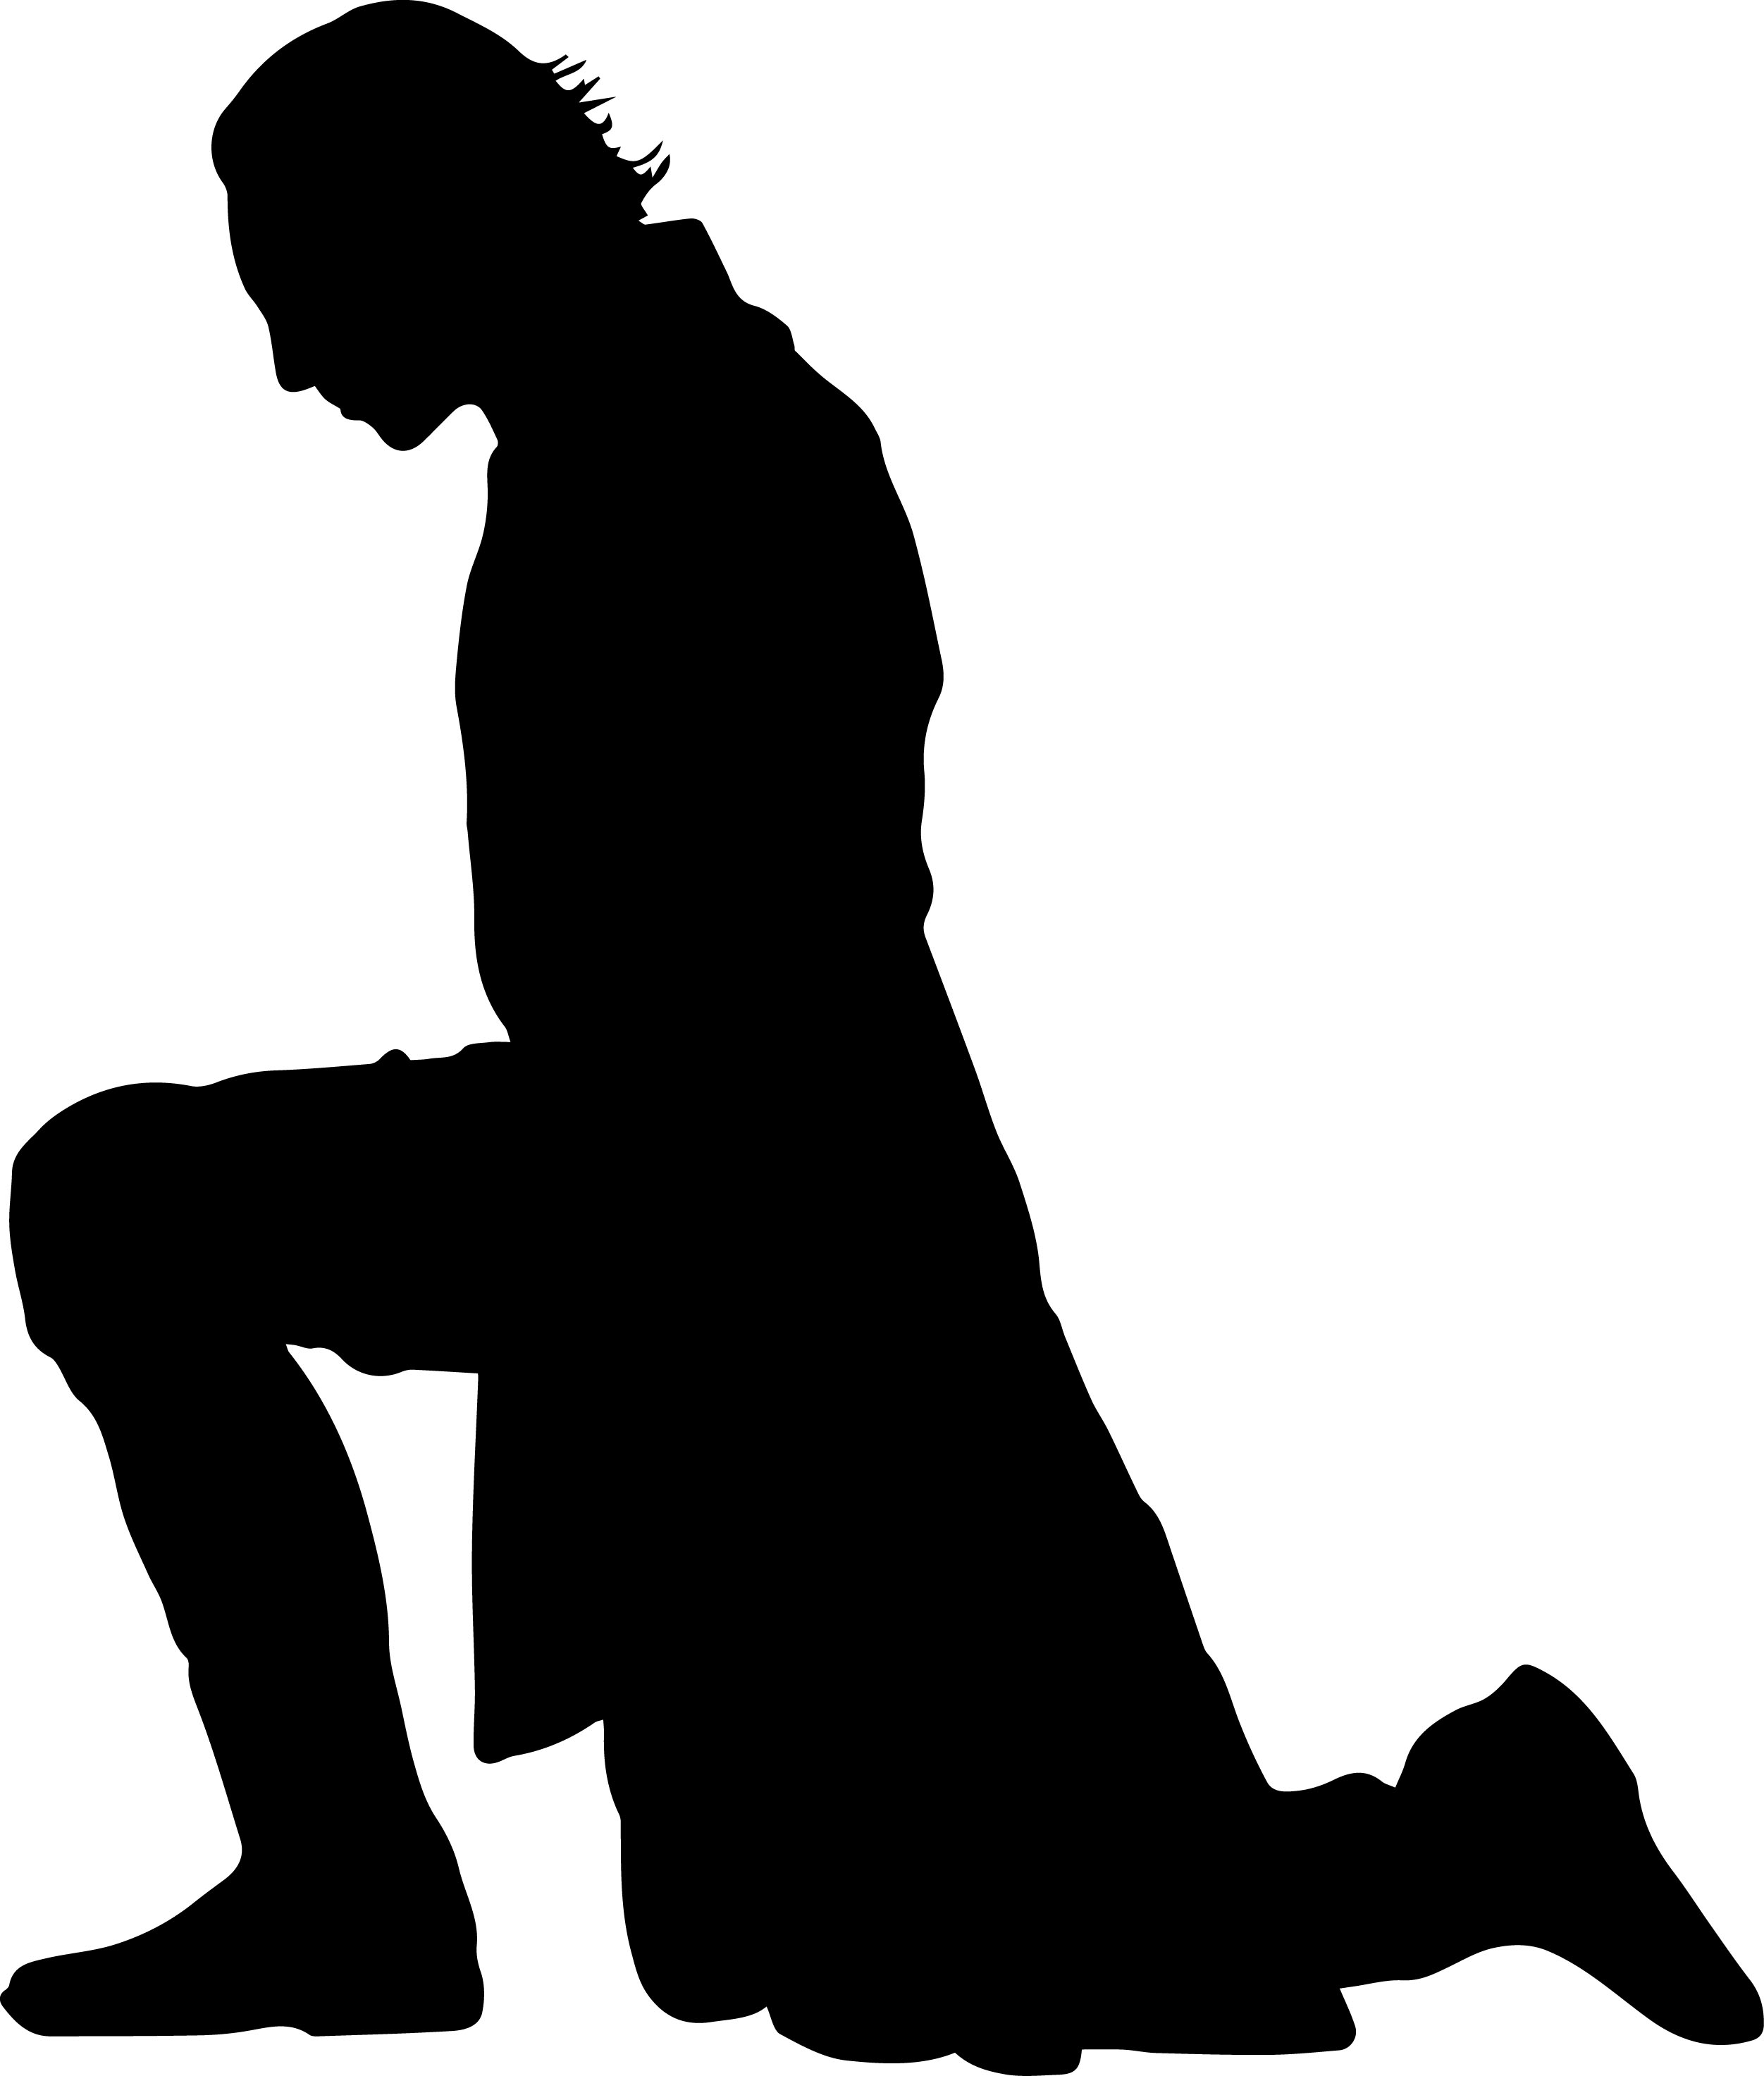 Kneeling prince silhouette clipart.